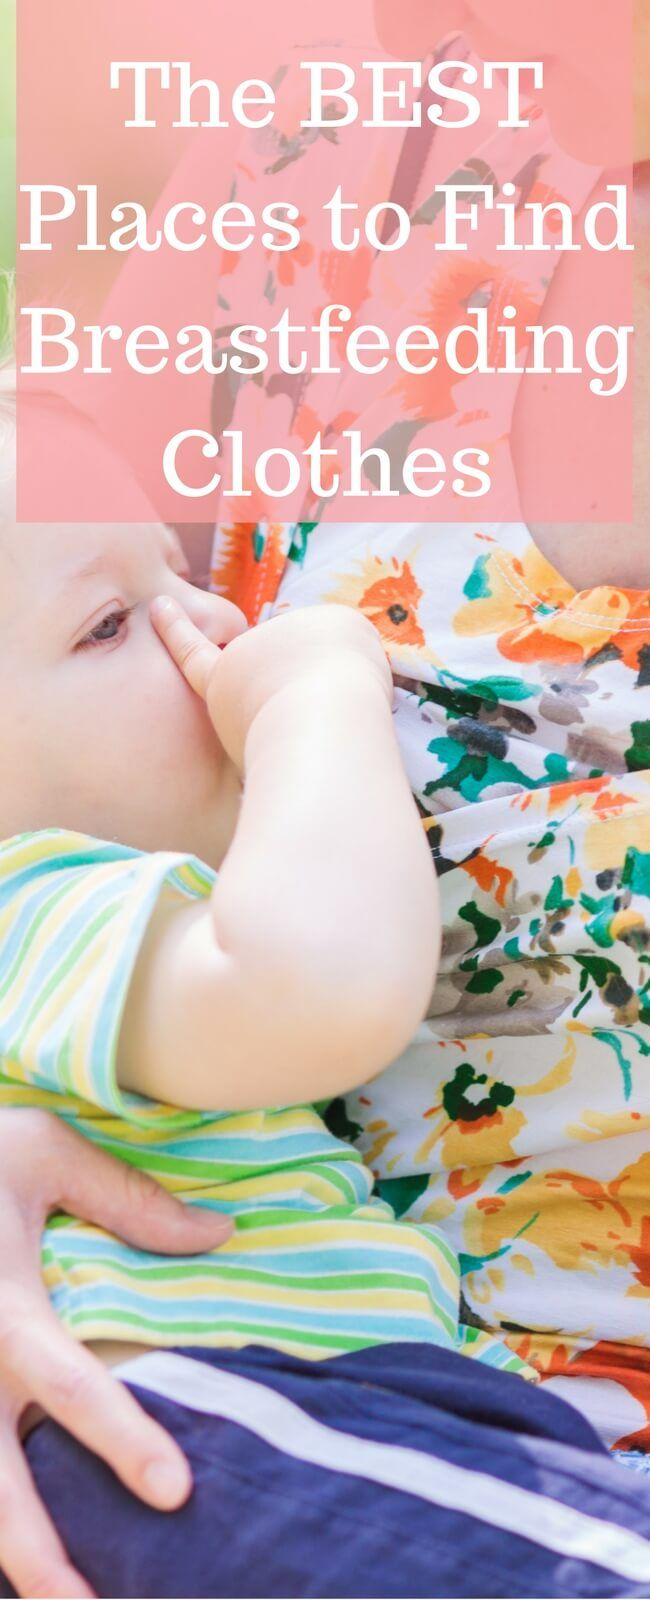 The BEST Places to Find Breastfeeding Clothes